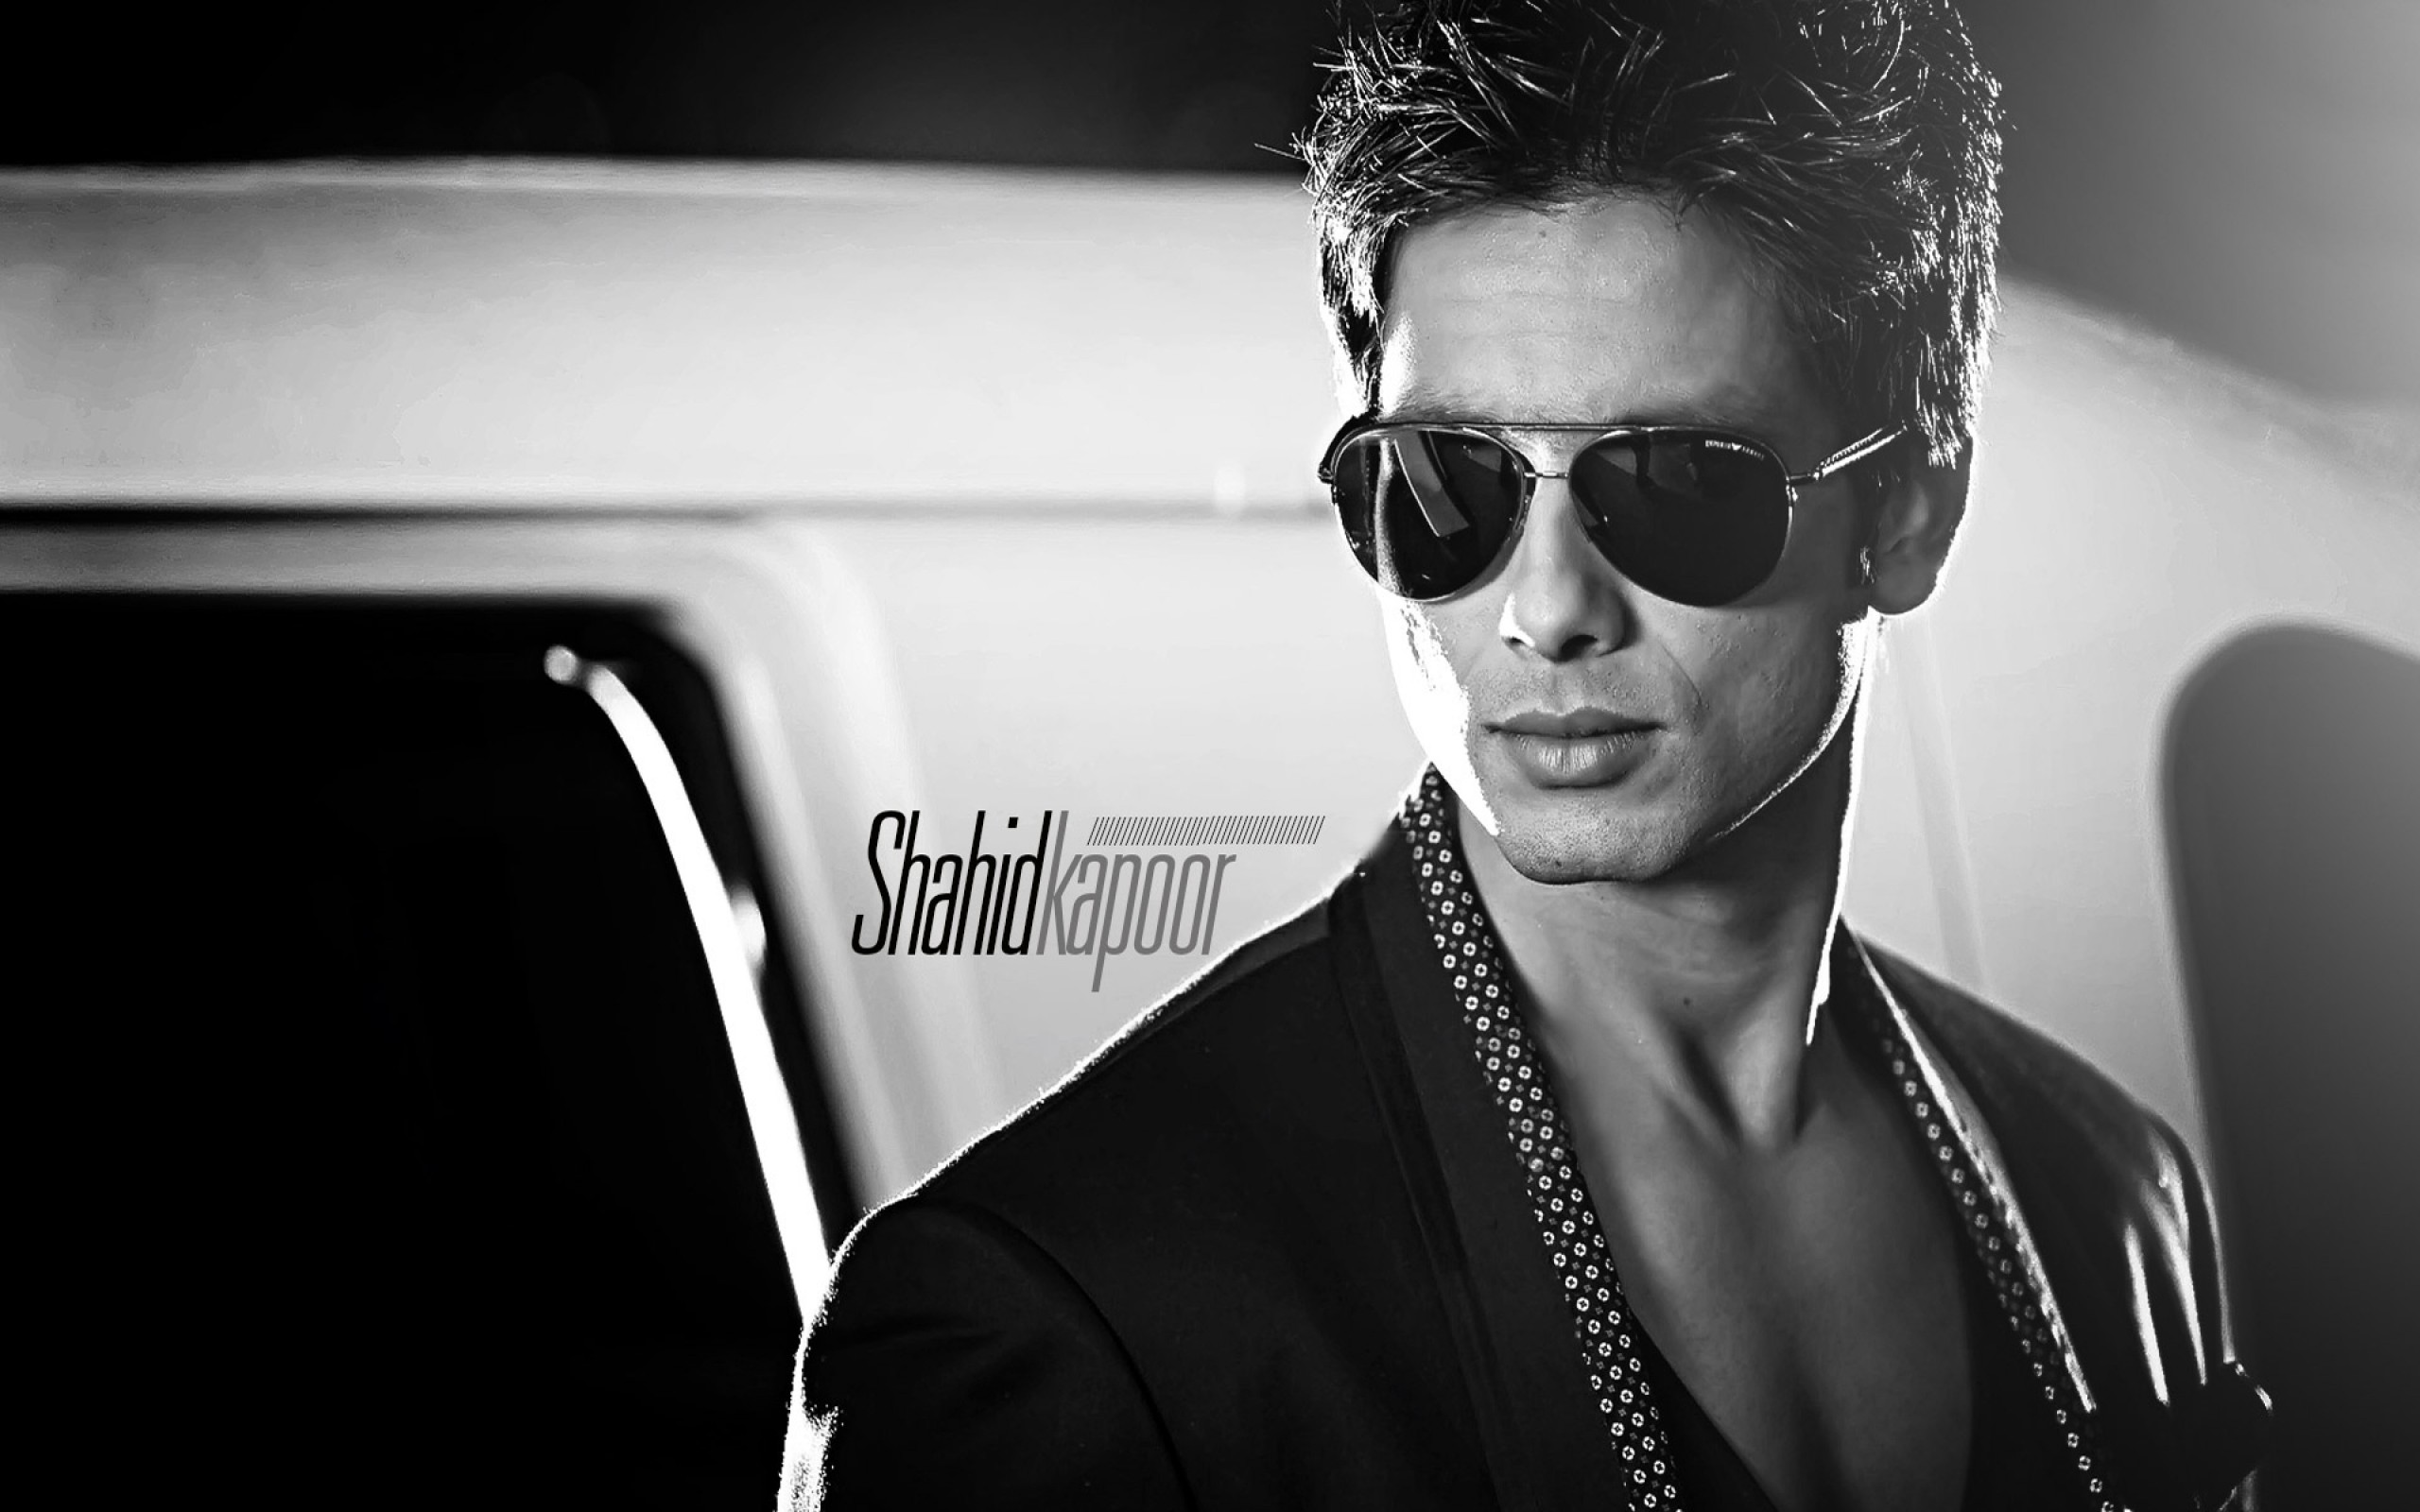 shahid kapoor hd wallpaper | hd latest wallpapers